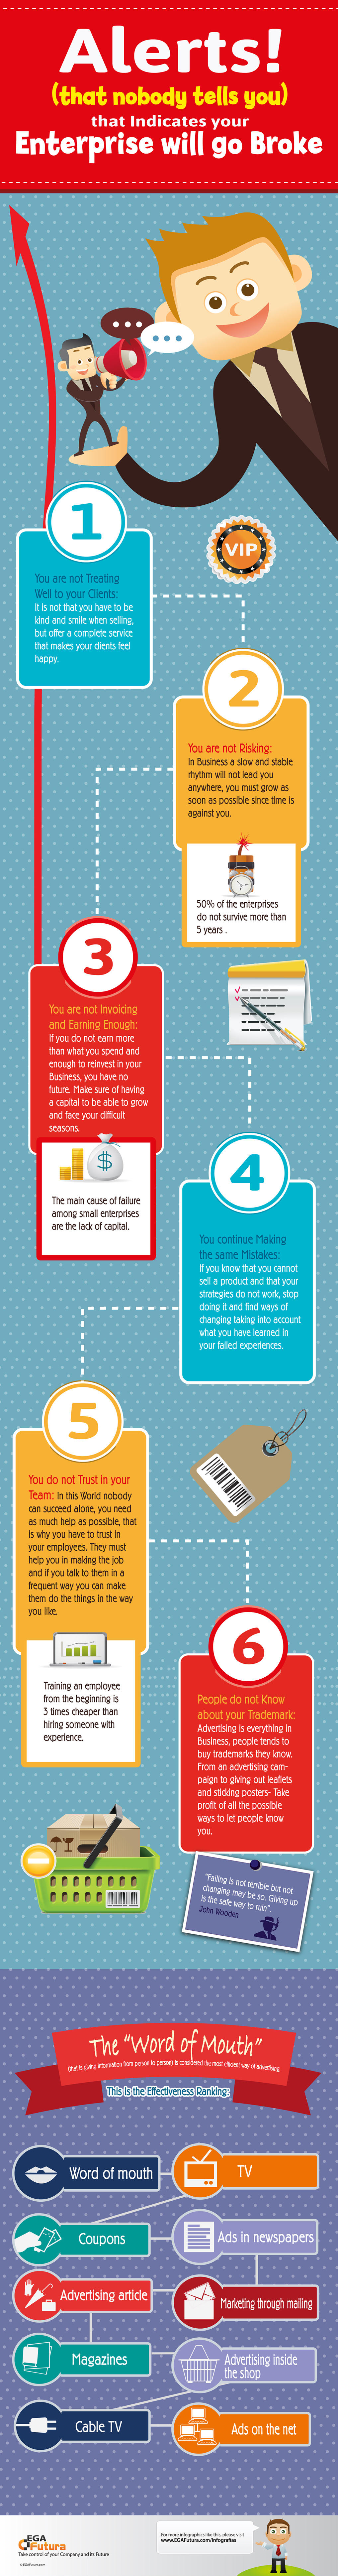 Infographic: 6 Alerts (that nobody tells you) that Indicates your Enterprise will go Broke